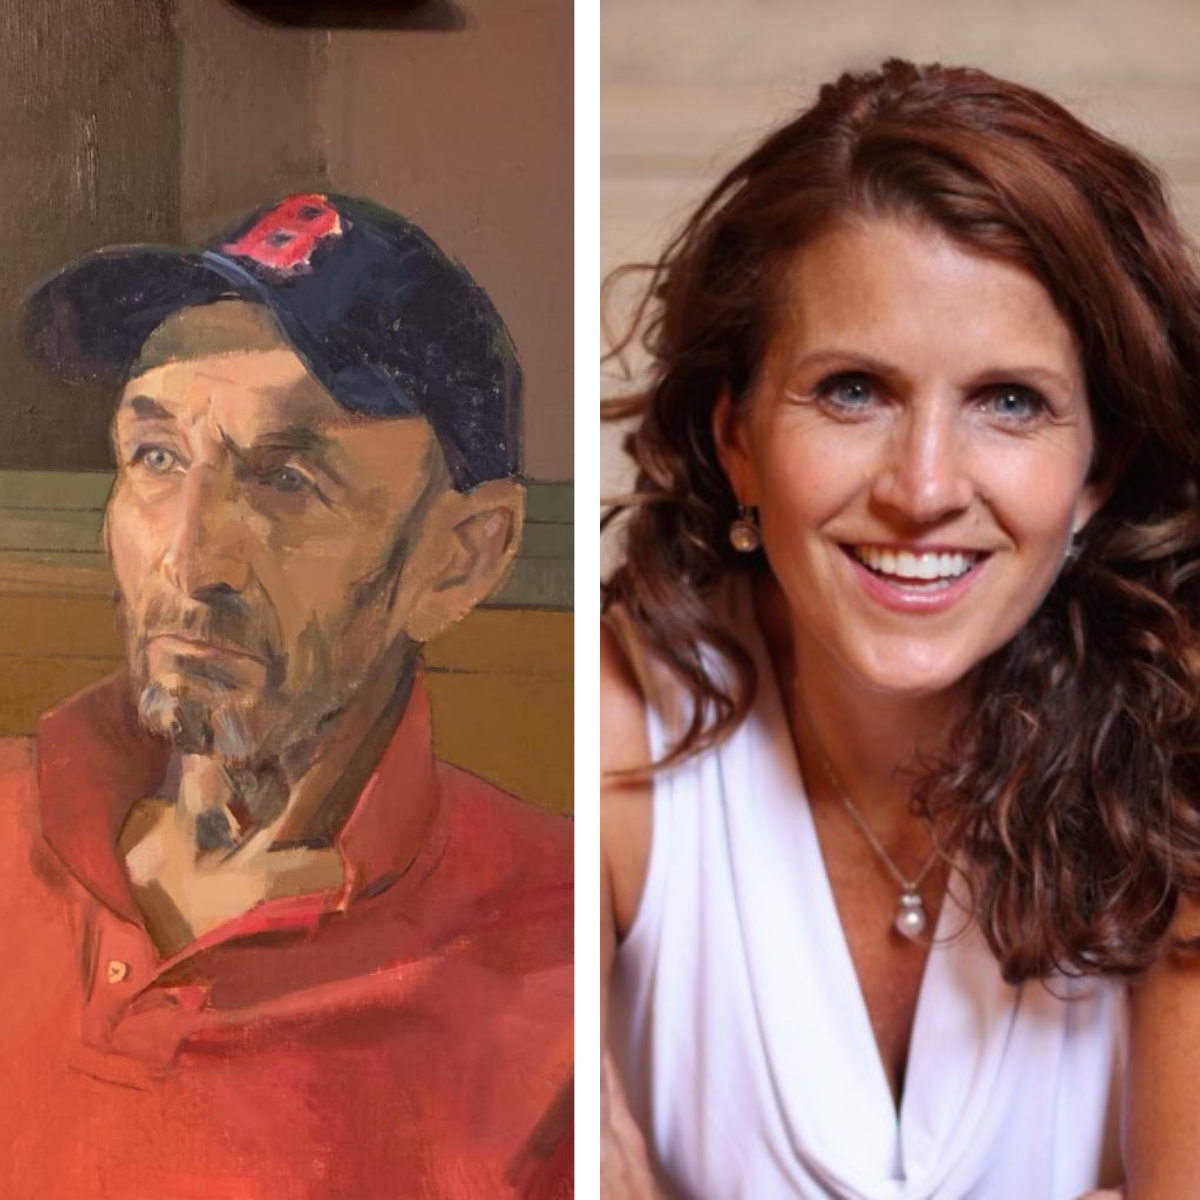 portrait of a man wearing a basecall cap on the left and photo of a woman with long curly hair smiling on the right